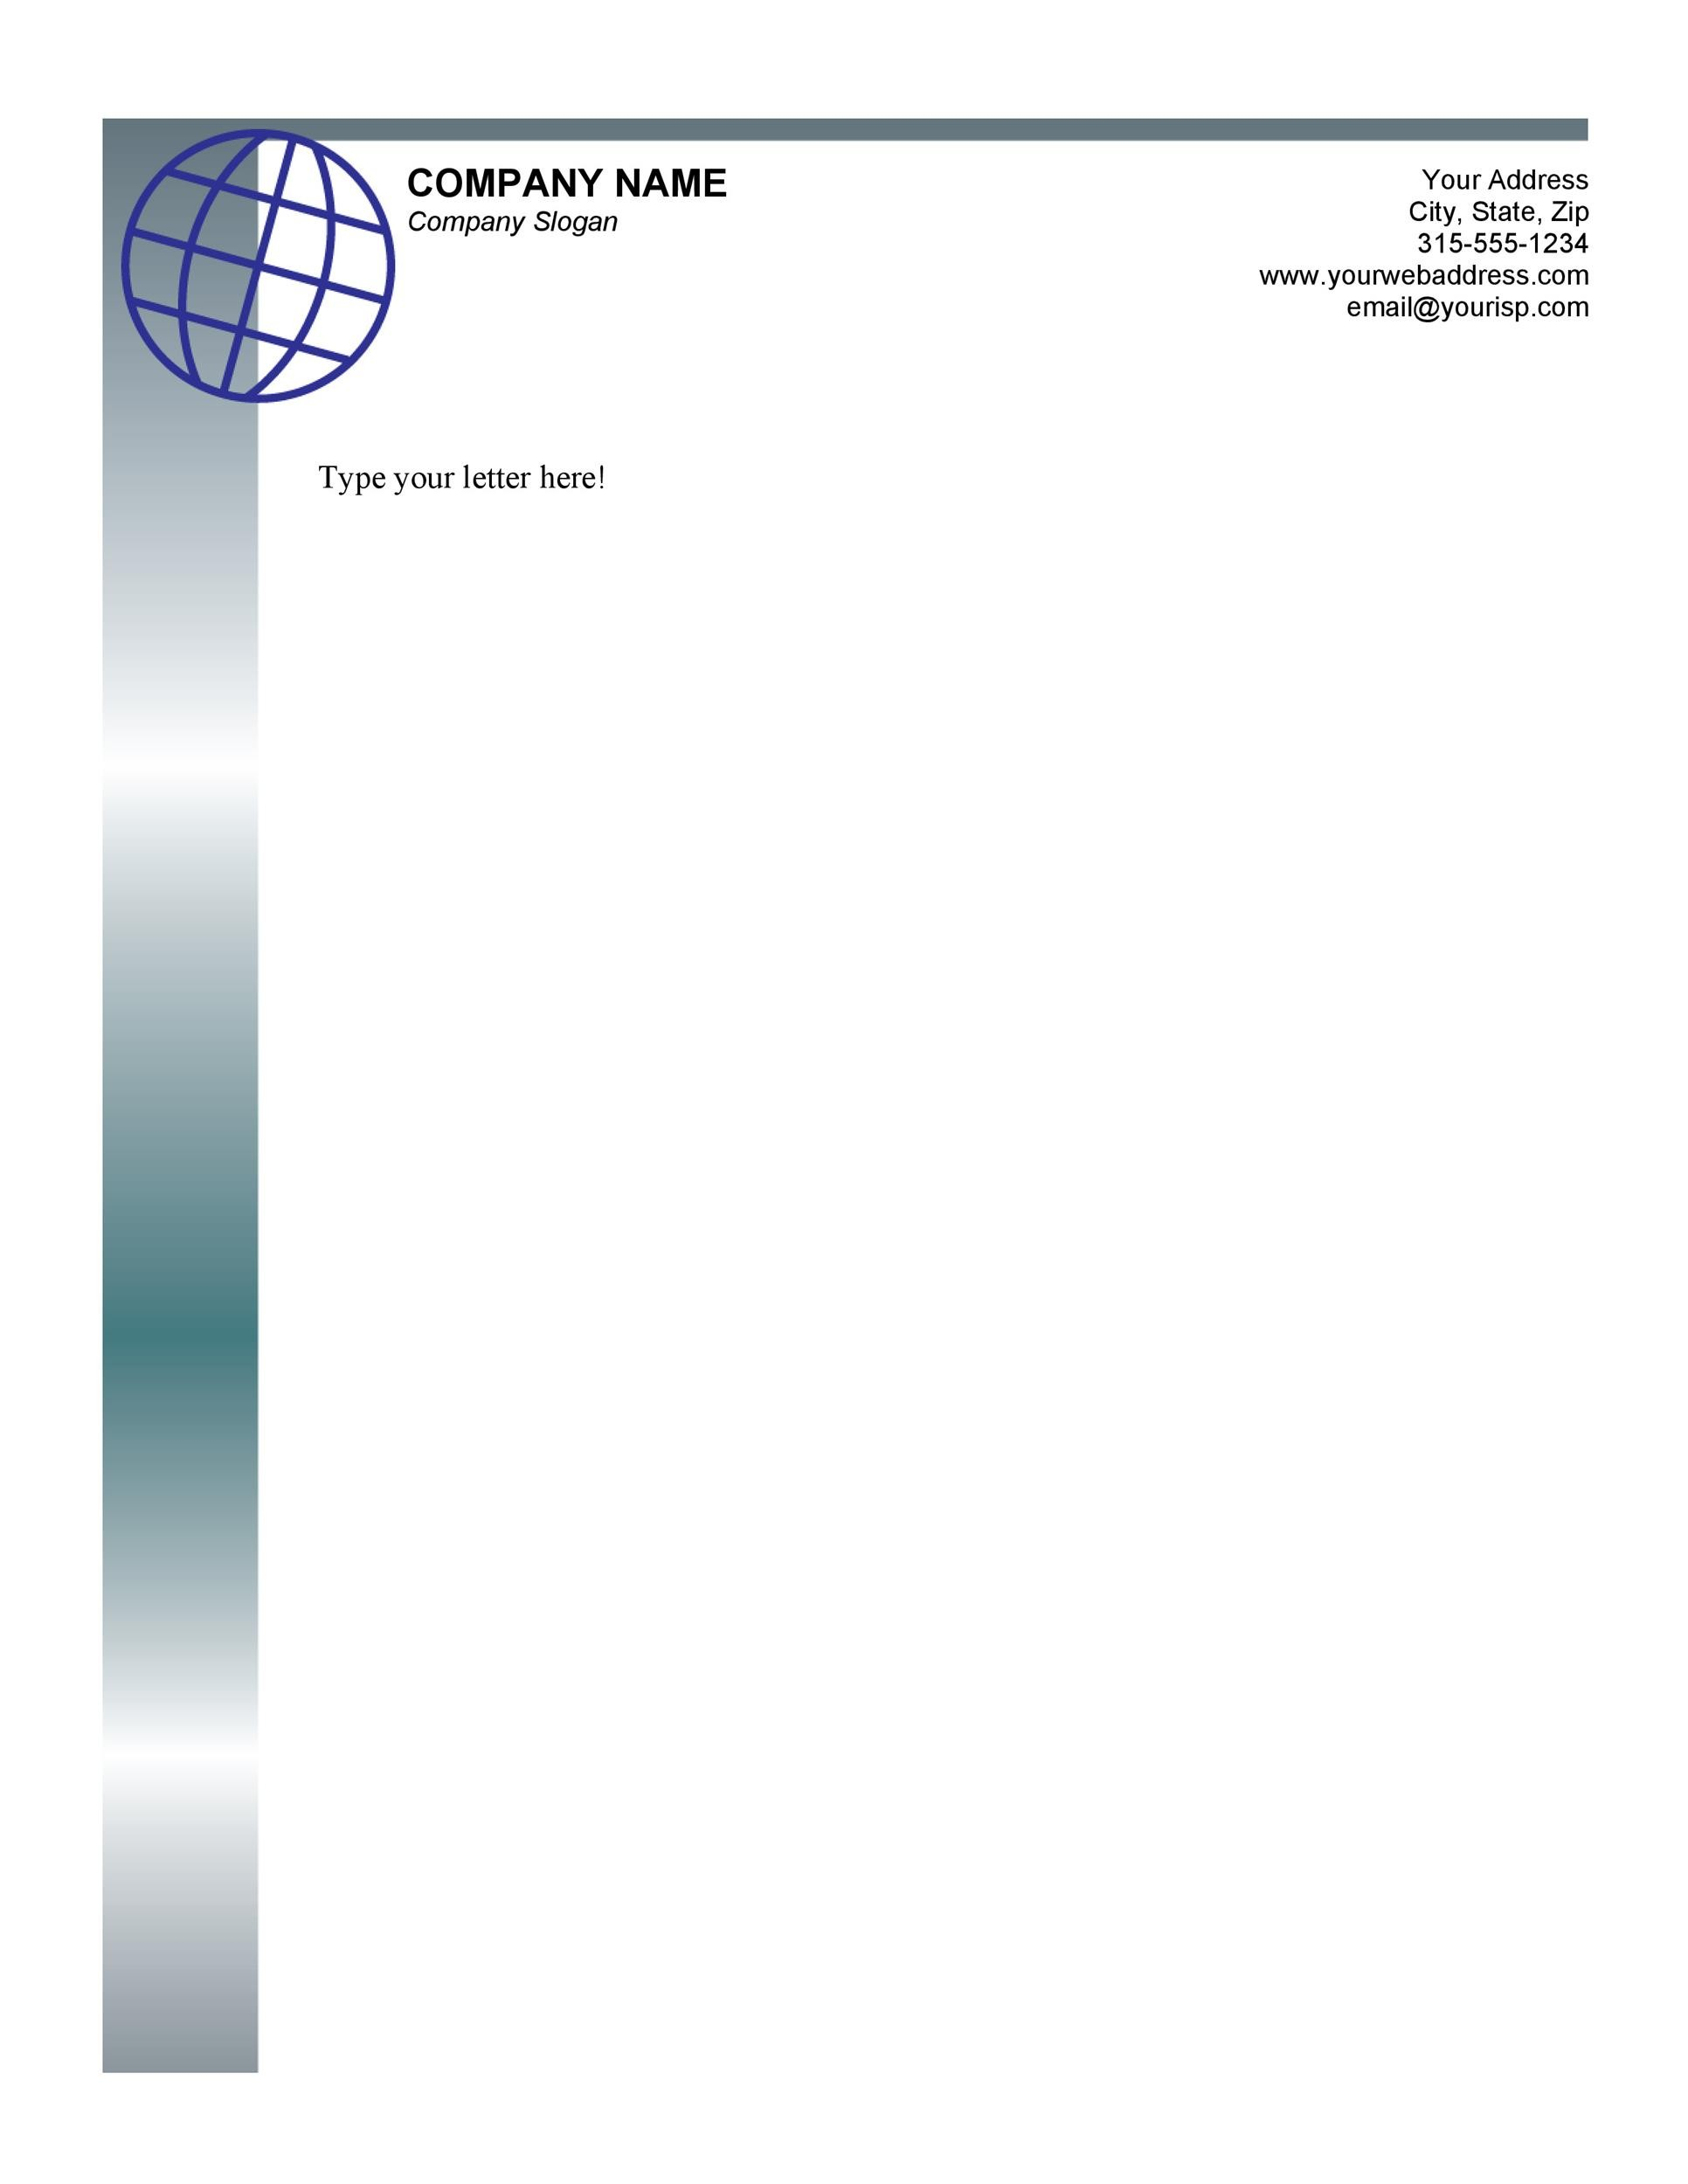 Business Letterhead. Template Corporate Letterhead Style 25+